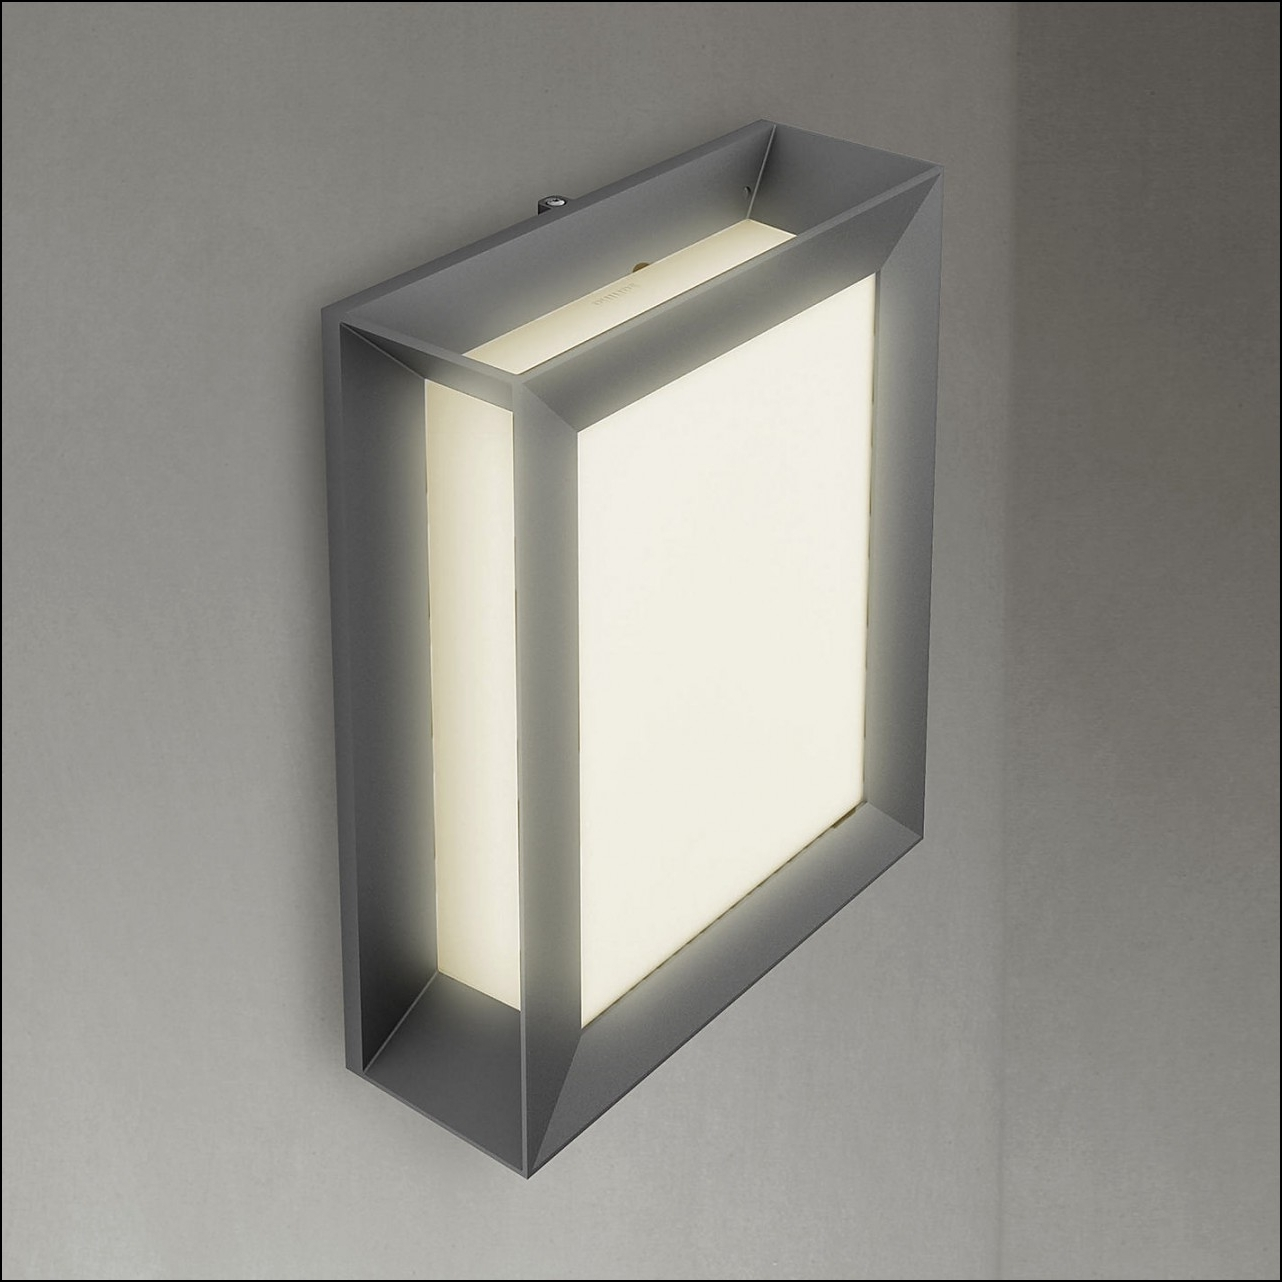 2019 Outdoor Wall Lights At John Lewis In Lovely Outdoor Wall Lights (View 1 of 20)